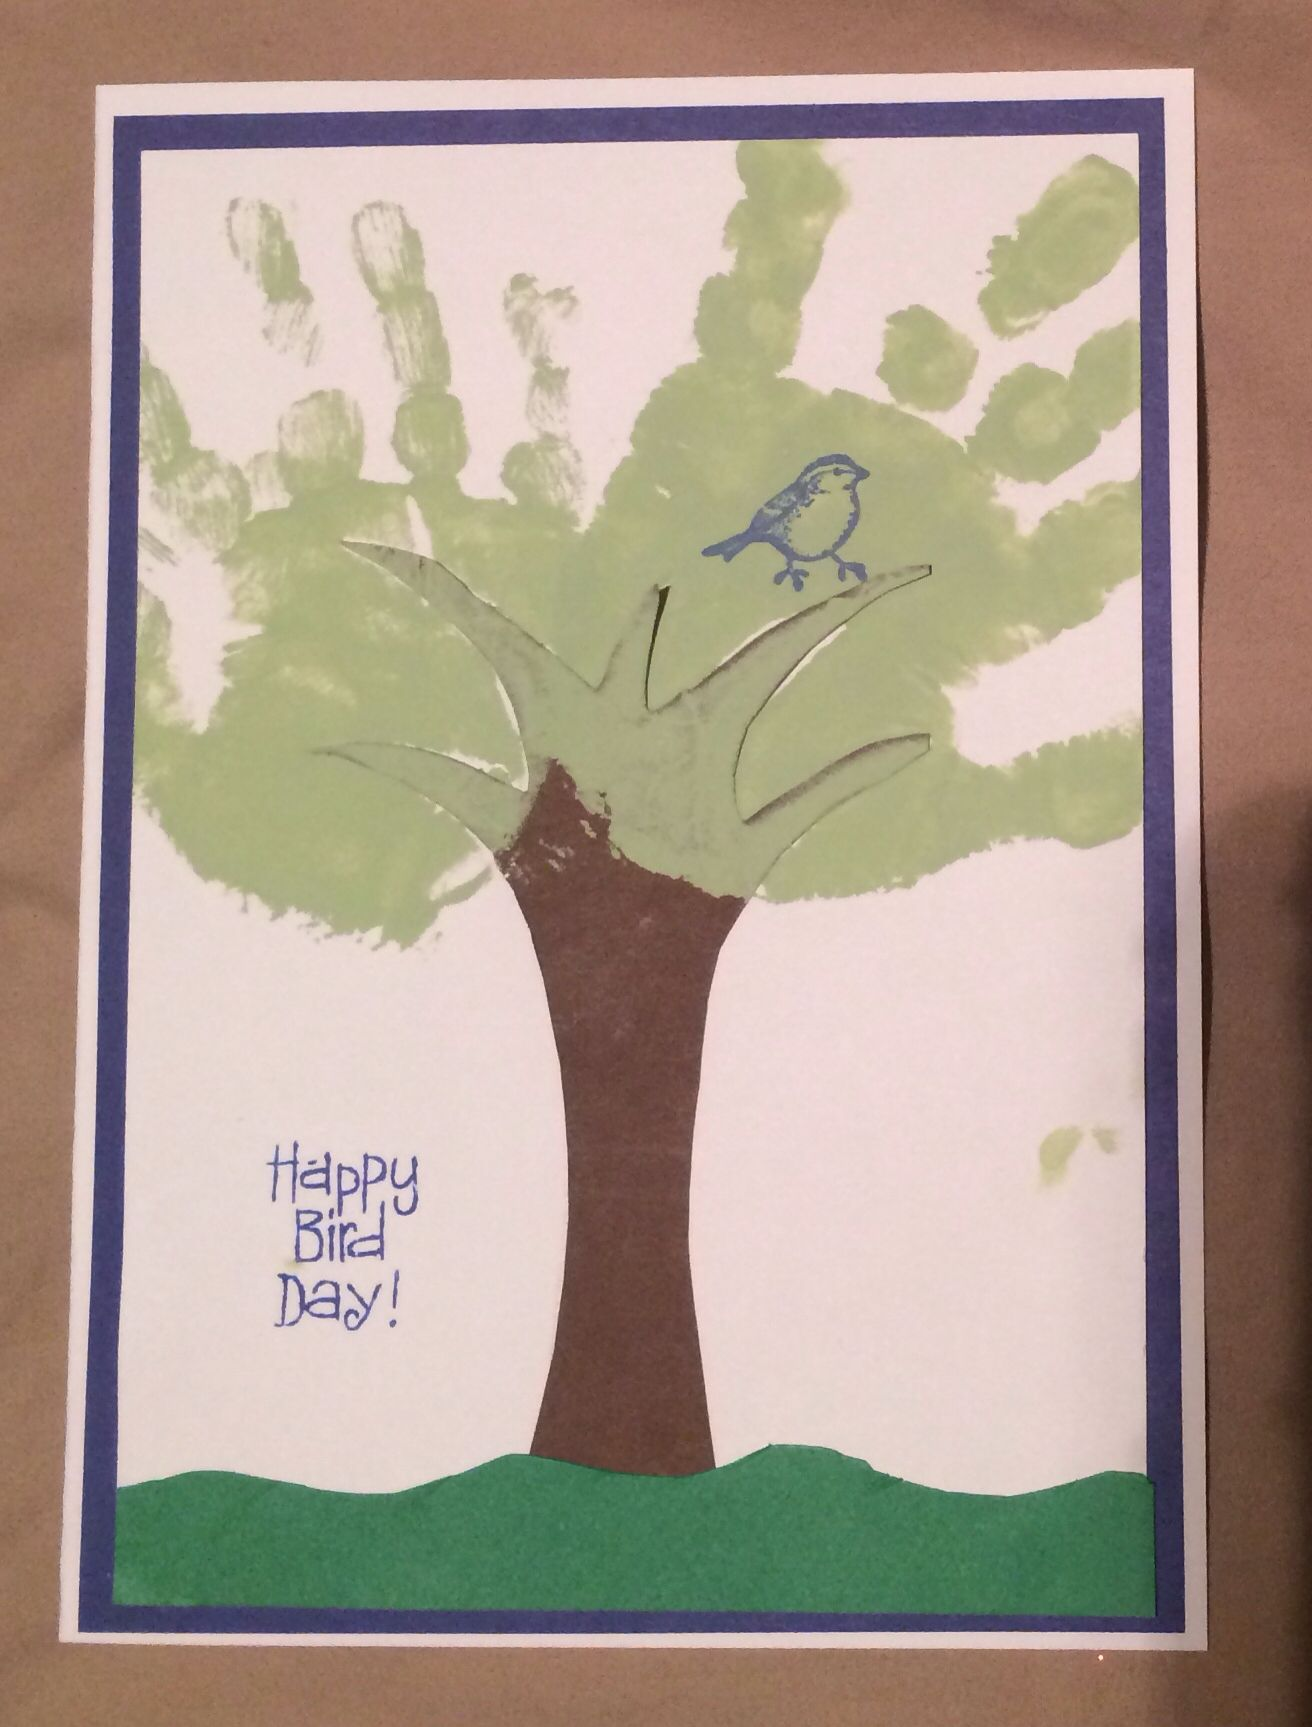 We made this tree handprint card for grandpaus birthday the tree